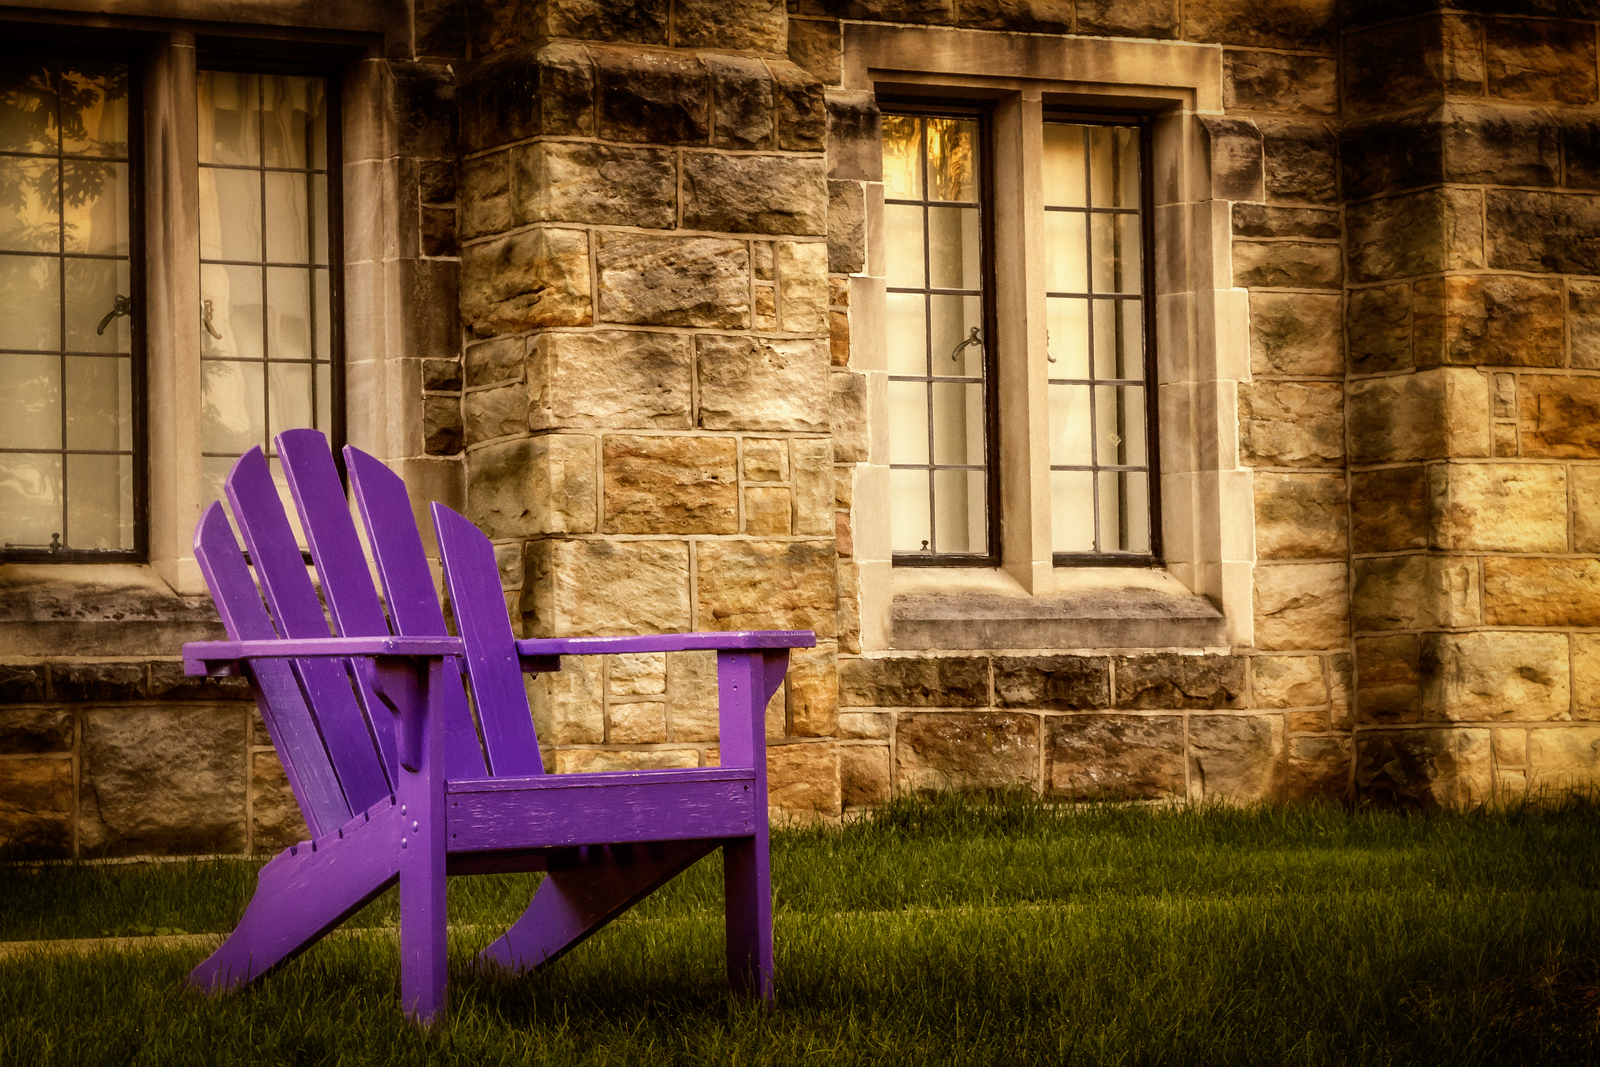 Chair behind the Samuel Mather Science Hall on the Kenyon College campus in Gambier, Ohio. Photographed on July 16, 2013.